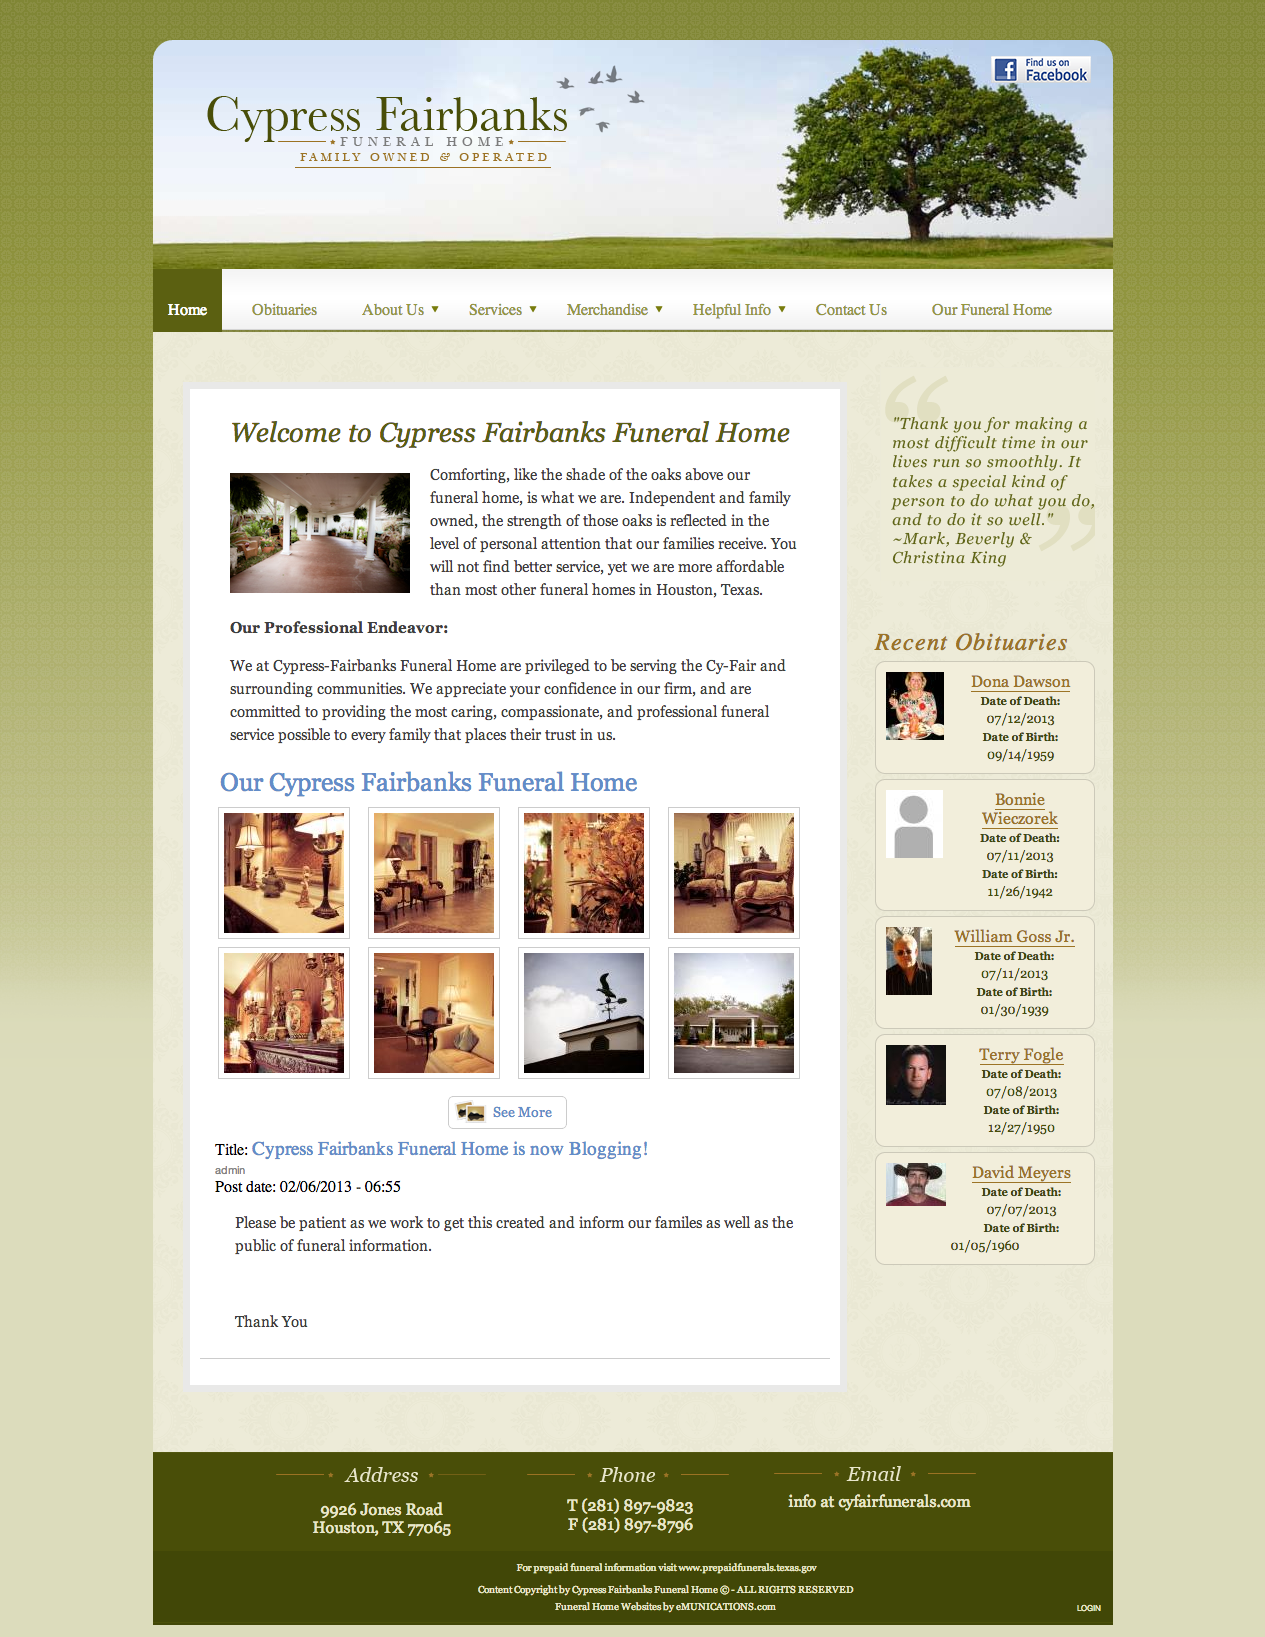 Elegant Funeral Home Websitesemunications Com Inc